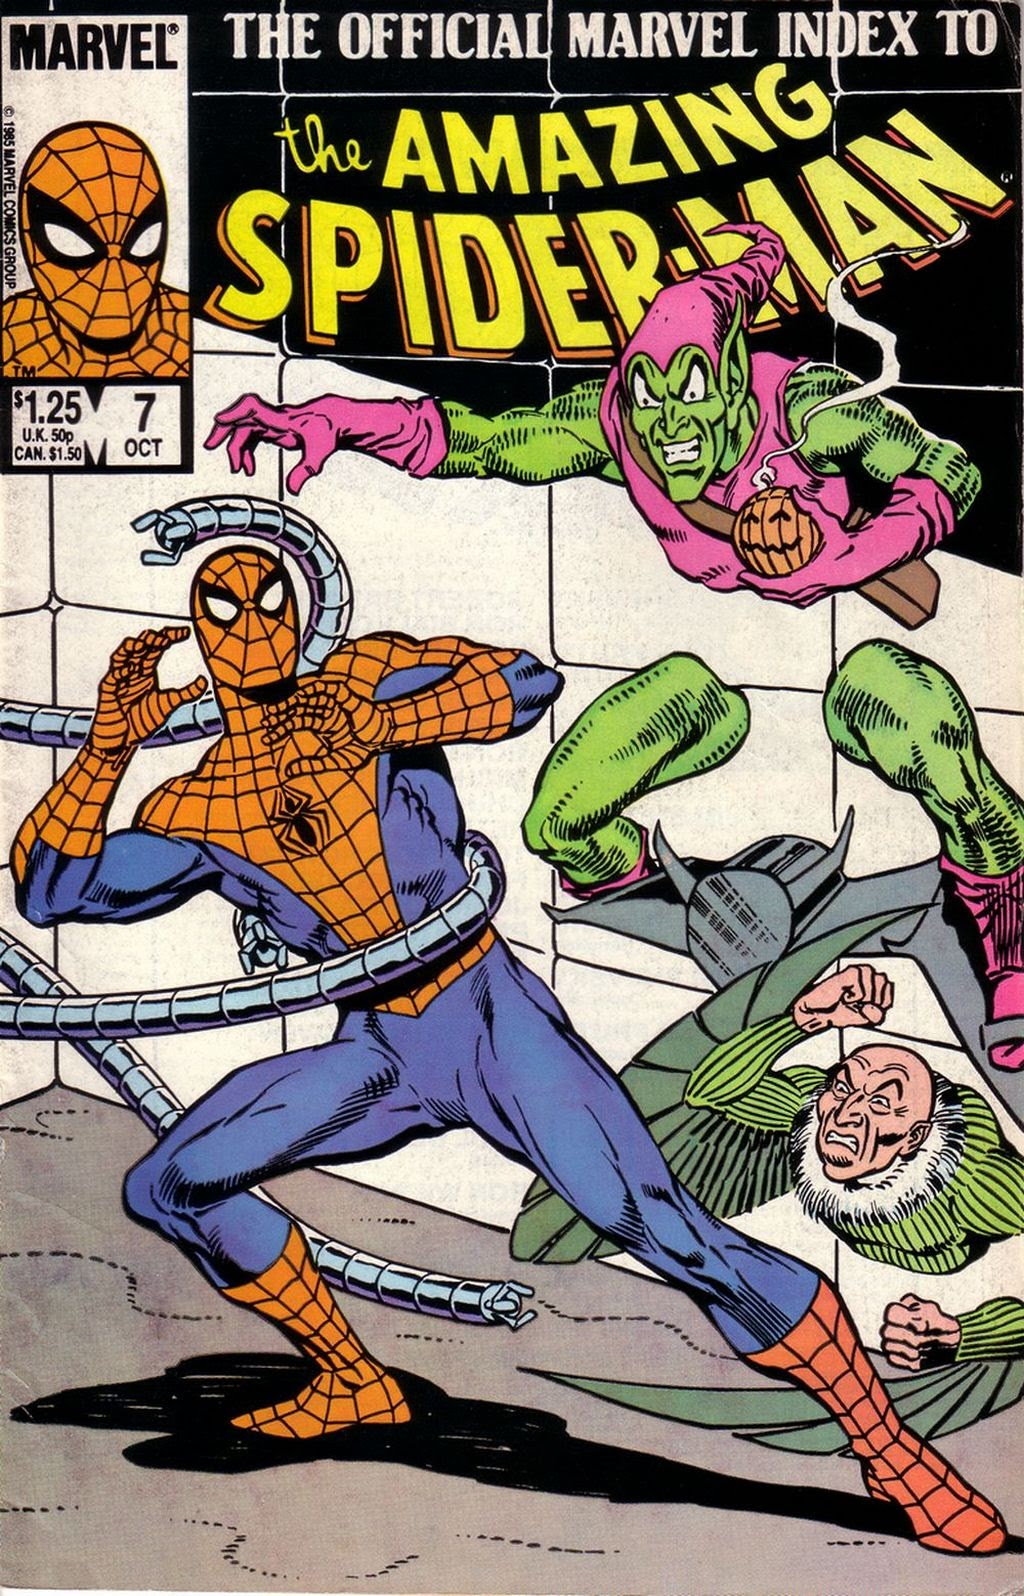 The Official Marvel Index to The Amazing Spider-Man 7 Page 1